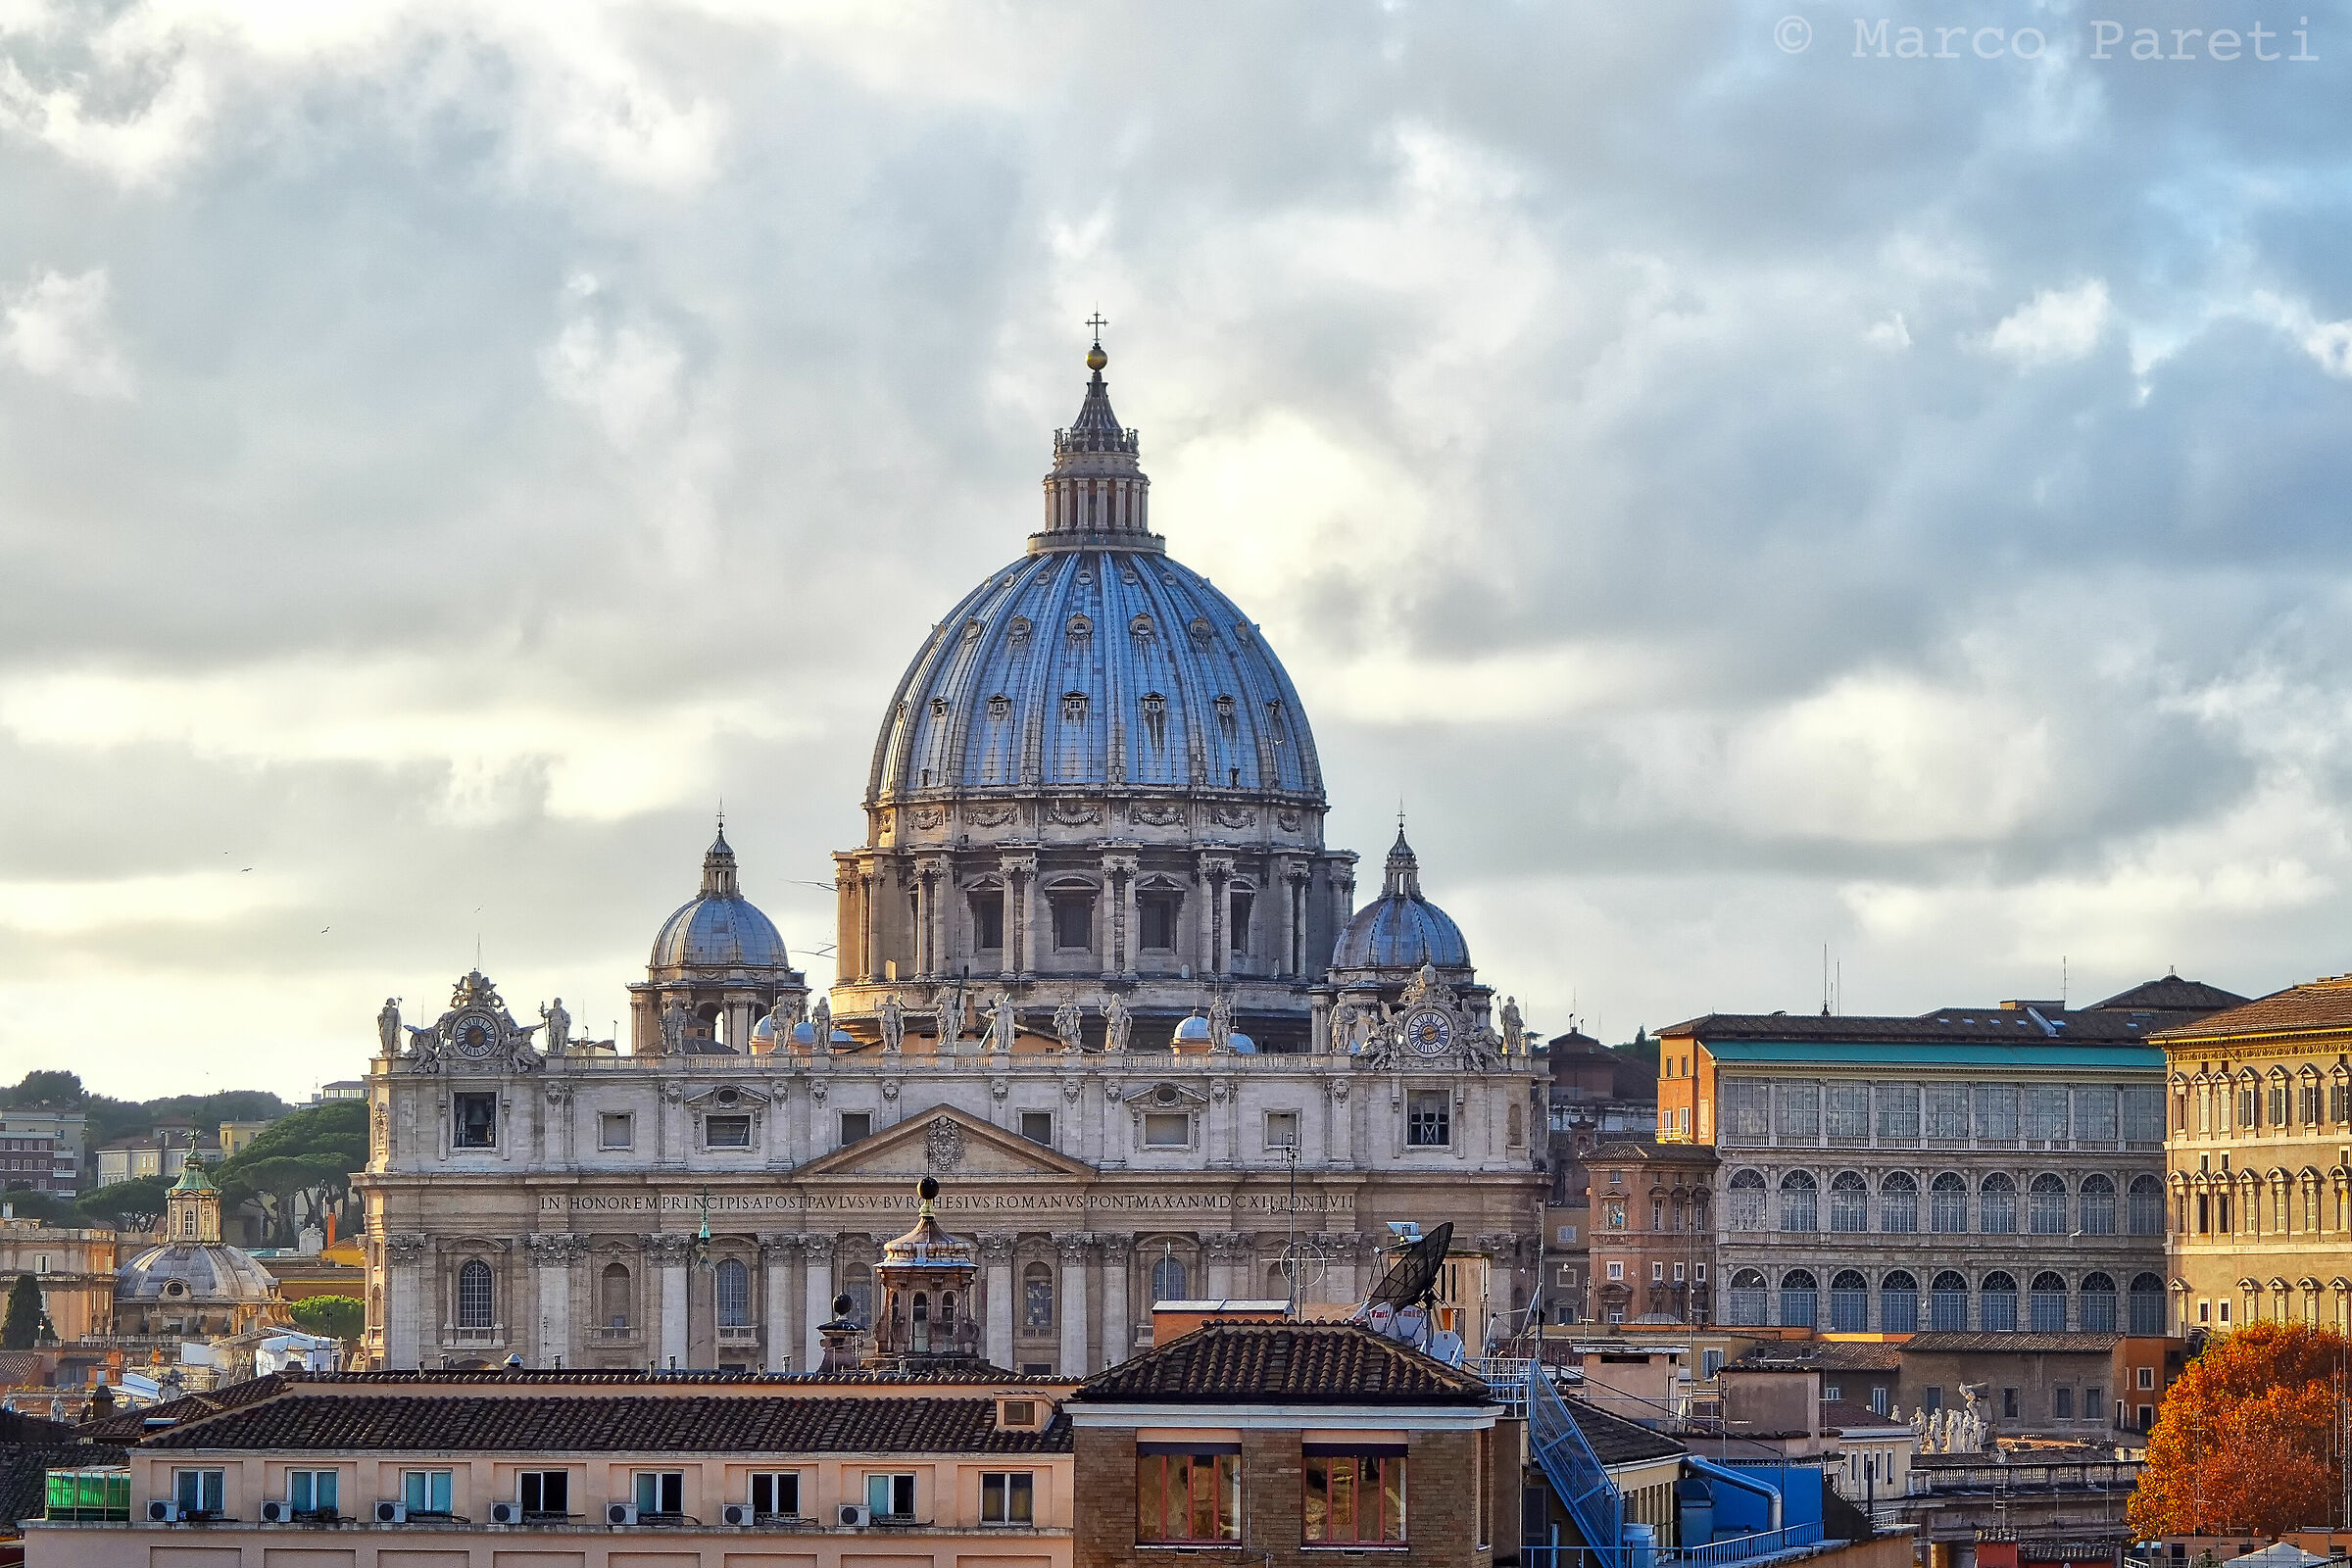 From Castel Sant'Angelo...